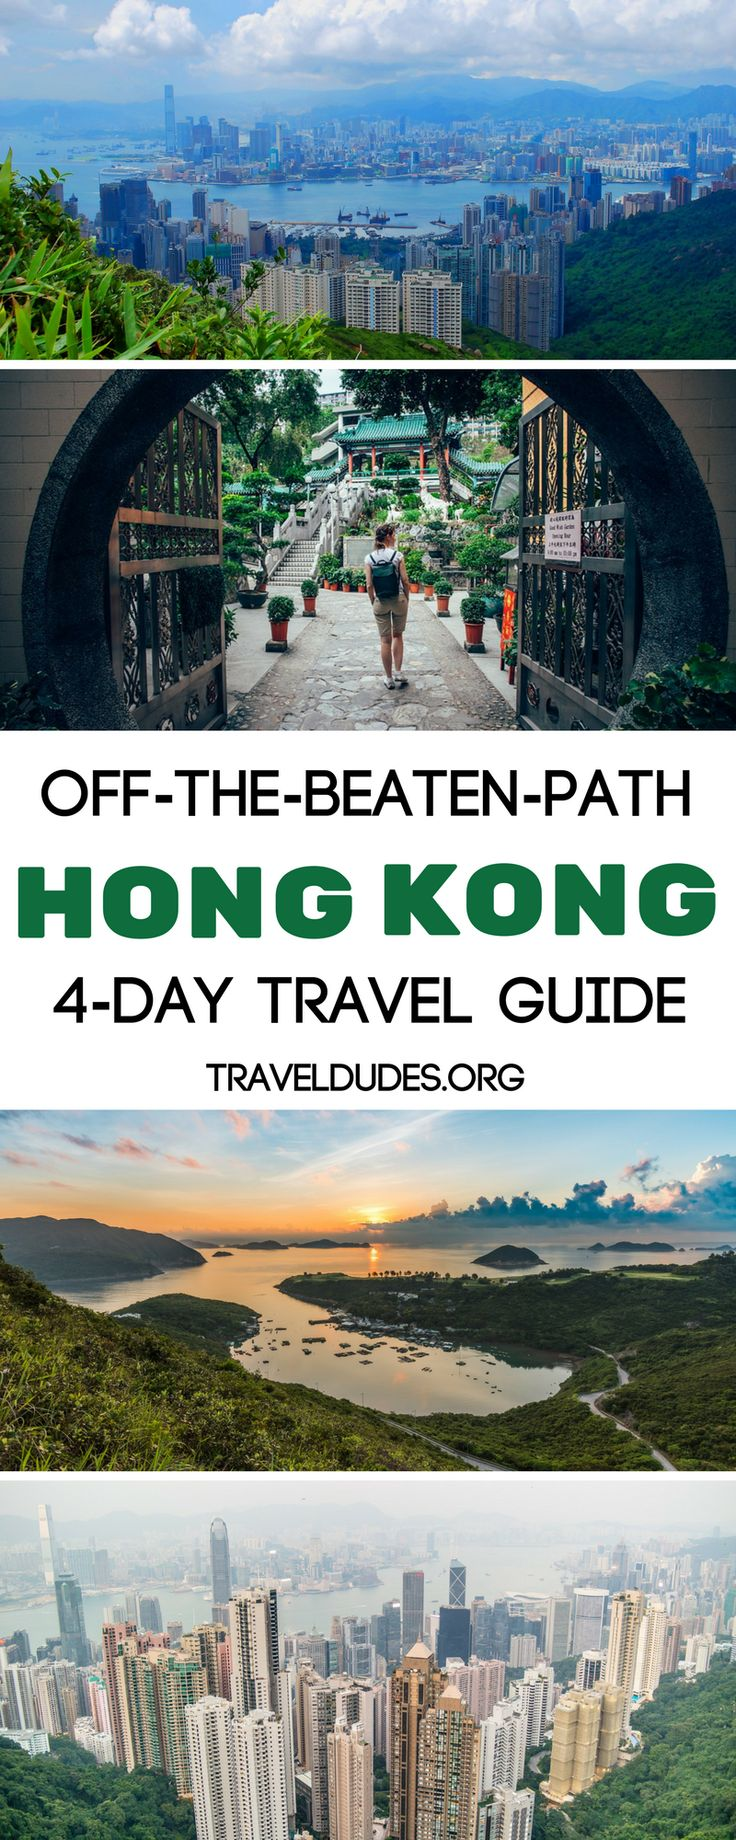 The ultimate off-the-beaten-path guide to exploring Hong Kong over four days.  Get away from the tourist crowds and experience the real Hong Kong, which is full of secret beaches, hidden islands, small villages, and delicious local food. Best offbeat things to do in Hong Kong.  Travel Dudes Social Travel Community #HongKong